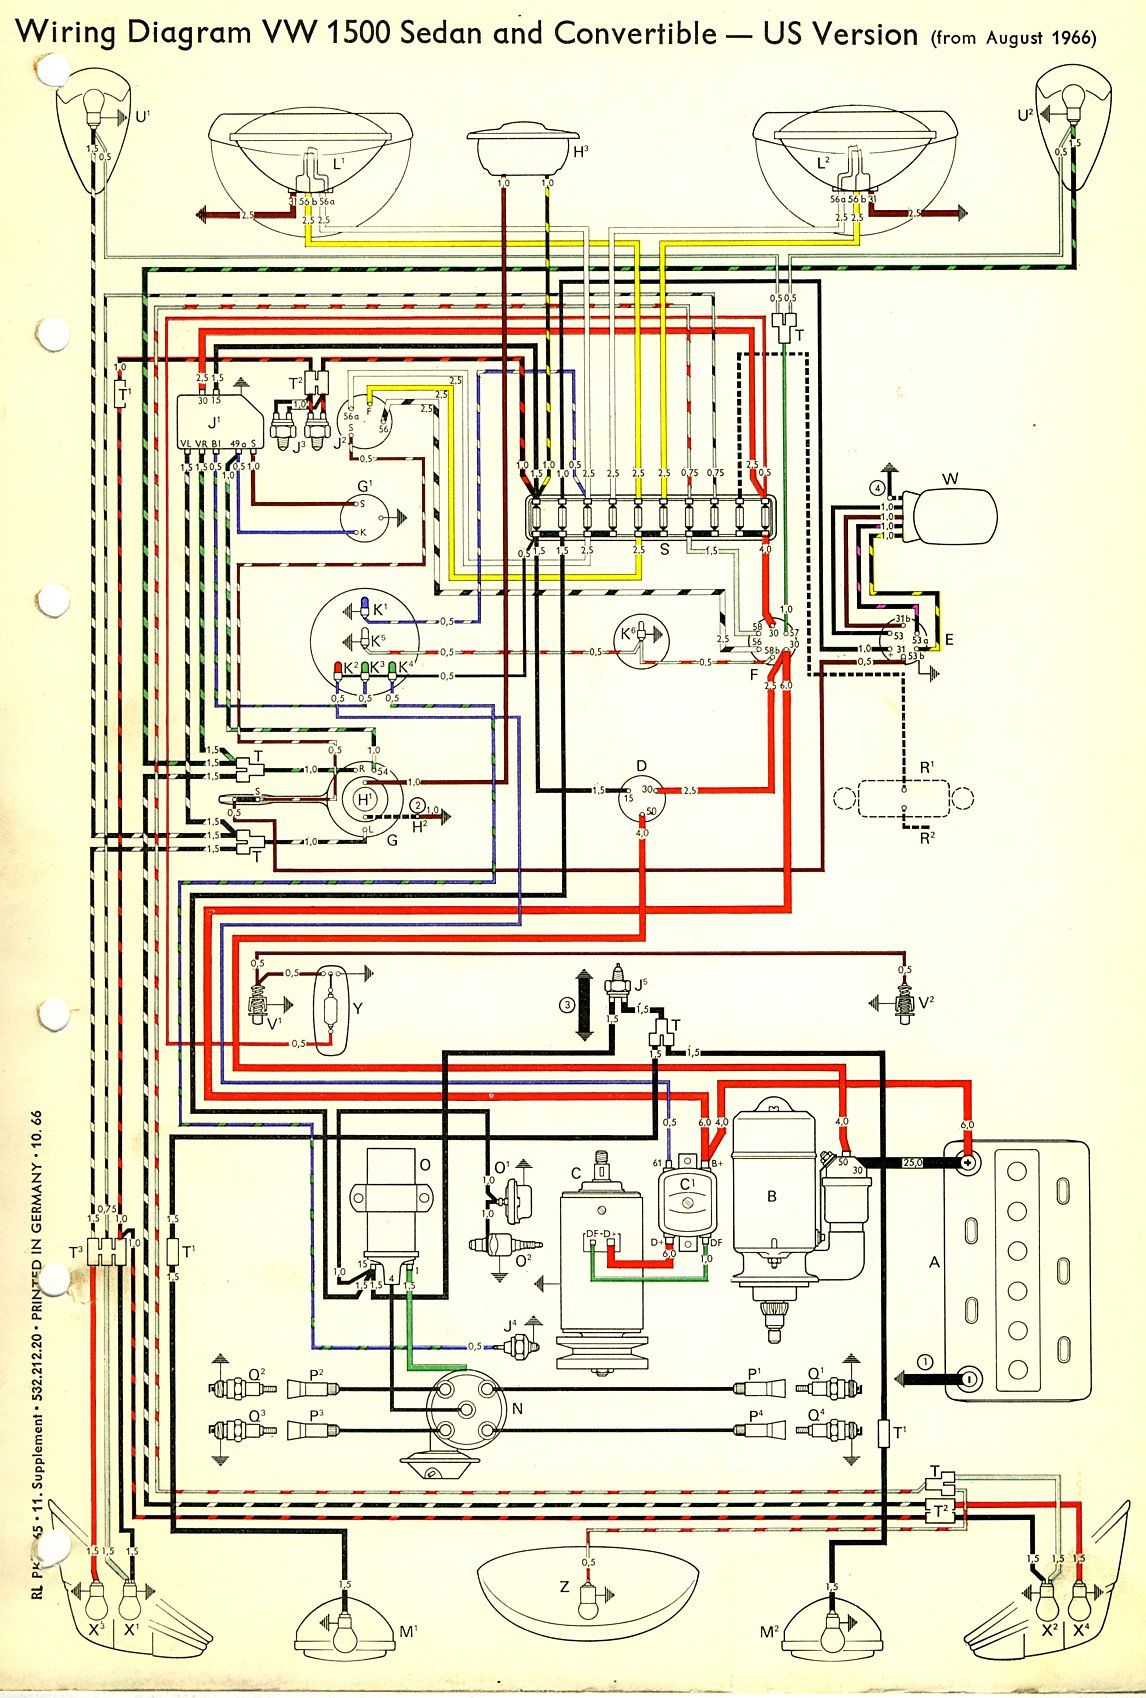 1972 Vw Bus Wiring Diagram 7 Blade Trailer Connector For 1967 Beetle Schema Usa Thegoldenbug Com Best 1965